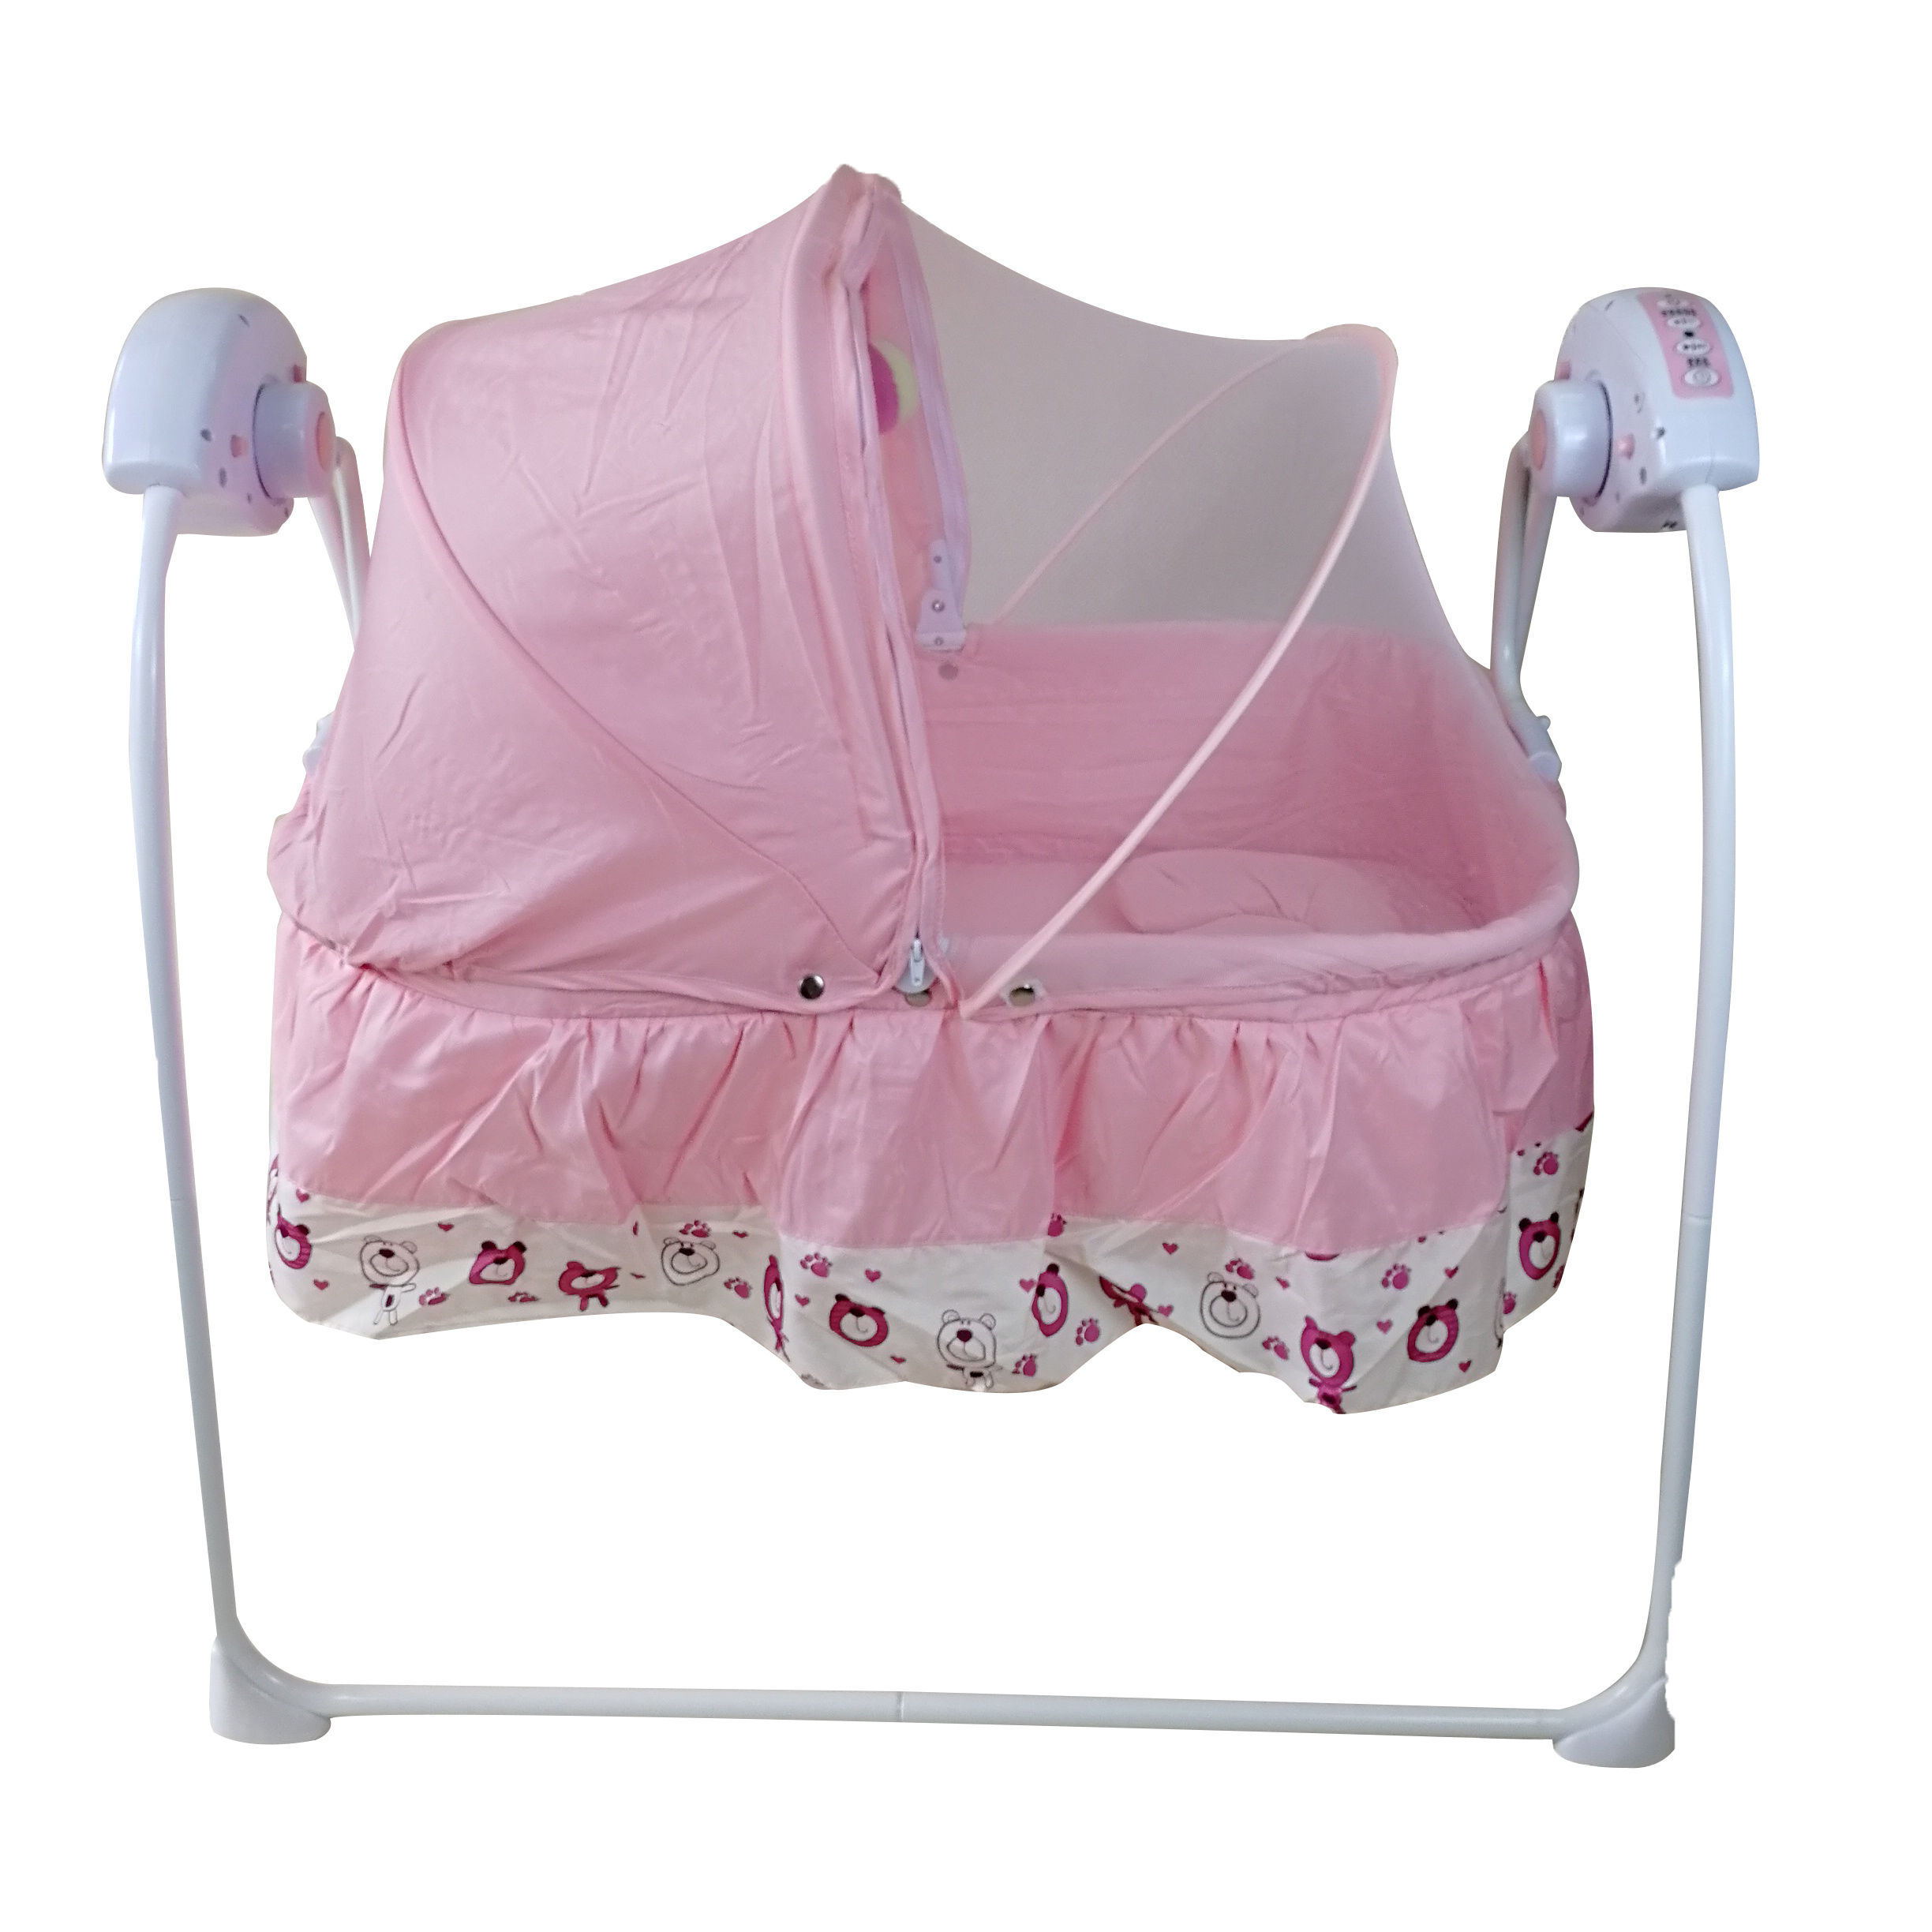 Wholesale Automatic Baby swing Cradle sleepy dream Metal baby cribs stable iron frame swing baby bed cradle